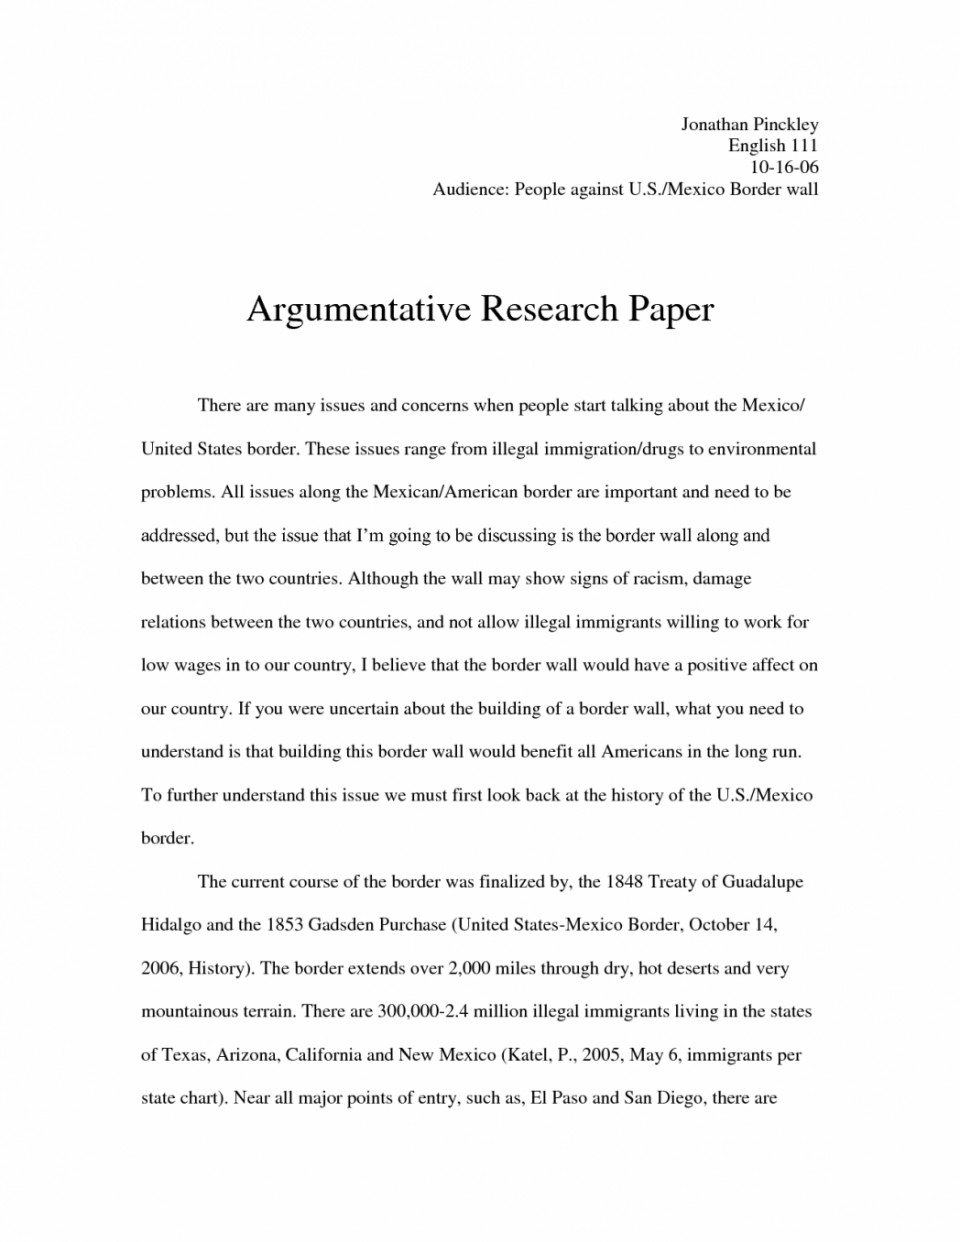 004 Argumentative Essay On Illegal Immigration Argument Research Persuasive Why Is Good Pgune Reform In America Topics Control Pro Thesis Rights 1048x1356 Exceptional Titles Policy Examples Outline 960